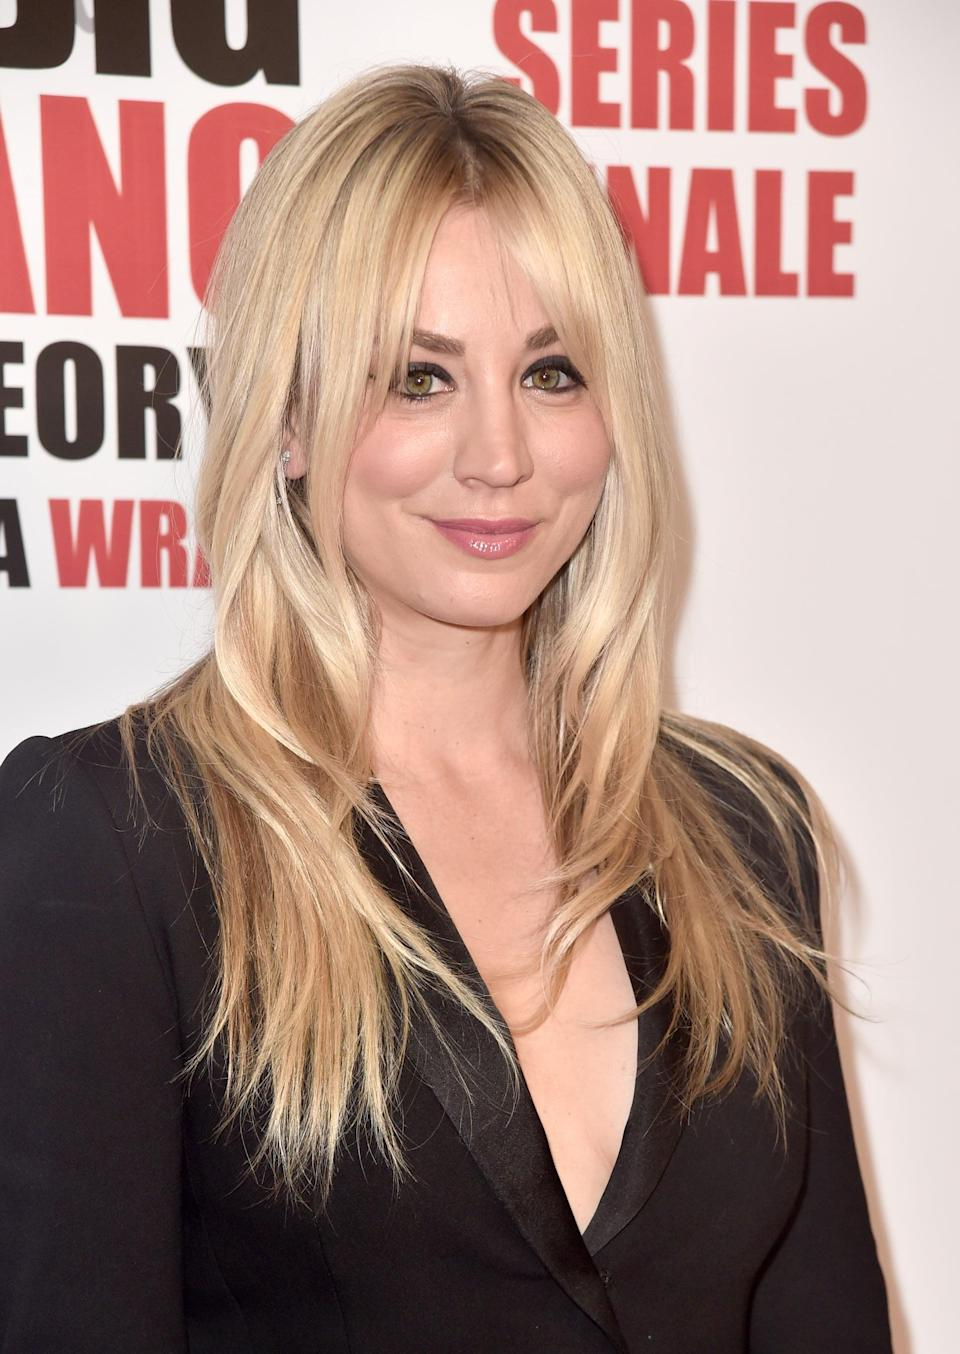 """<p>Kaley Cuoco, who plays sexy girl-next-door Penny, will be taking her talents to voice acting after the conclusion of <strong>The Big Bang Theory</strong>, <a href=""""http://ew.com/tv/2018/10/03/kaley-cuoco-harley-quinn-dc-universe-animated-series/"""" rel=""""nofollow noopener"""" target=""""_blank"""" data-ylk=""""slk:voicing Harley Quinn and serving as executive producer"""" class=""""link rapid-noclick-resp"""">voicing Harley Quinn and serving as executive producer</a> in the animated series of the same name, debuting on the DC Universe streaming service in October. She'll also <a href=""""http://deadline.com/2017/10/kaley-cuoco-pod-deal-warner-bros-tv-the-flight-attendant-1202196368/"""" rel=""""nofollow noopener"""" target=""""_blank"""" data-ylk=""""slk:star in and produce the television adaptation of Chris Bohjalian's thriller novel"""" class=""""link rapid-noclick-resp"""">star in and produce the television adaptation of Chris Bohjalian's thriller novel</a> <strong>The Flight Attendant</strong>, which tells the story of a woman who wakes up next to a dead body with no idea how she - or the body - got there.</p> <p>As far as seeing Penny in a spin-off series, Cuoco revealed to <strong>Entertainment Tonight</strong> that <a href=""""http://www.etonline.com/kaley-cuoco-says-shes-thrilled-with-where-penny-ends-up-in-the-big-bang-theory-series-finale-124471"""" rel=""""nofollow noopener"""" target=""""_blank"""" data-ylk=""""slk:the only person she would say yes to would be TBBT series creator and executive producer Chuck Lorre"""" class=""""link rapid-noclick-resp"""">the only person she would say yes to would be <strong>TBBT</strong> series creator and executive producer Chuck Lorre</a>. """" . . . if Chuck came and said let's do it, I'd say yes,"""" she explained. """"Other than that, I don't see a spin-off for myself. But I don't like to say no to Chuck. So if he wanted it, I'm in.""""</p>"""